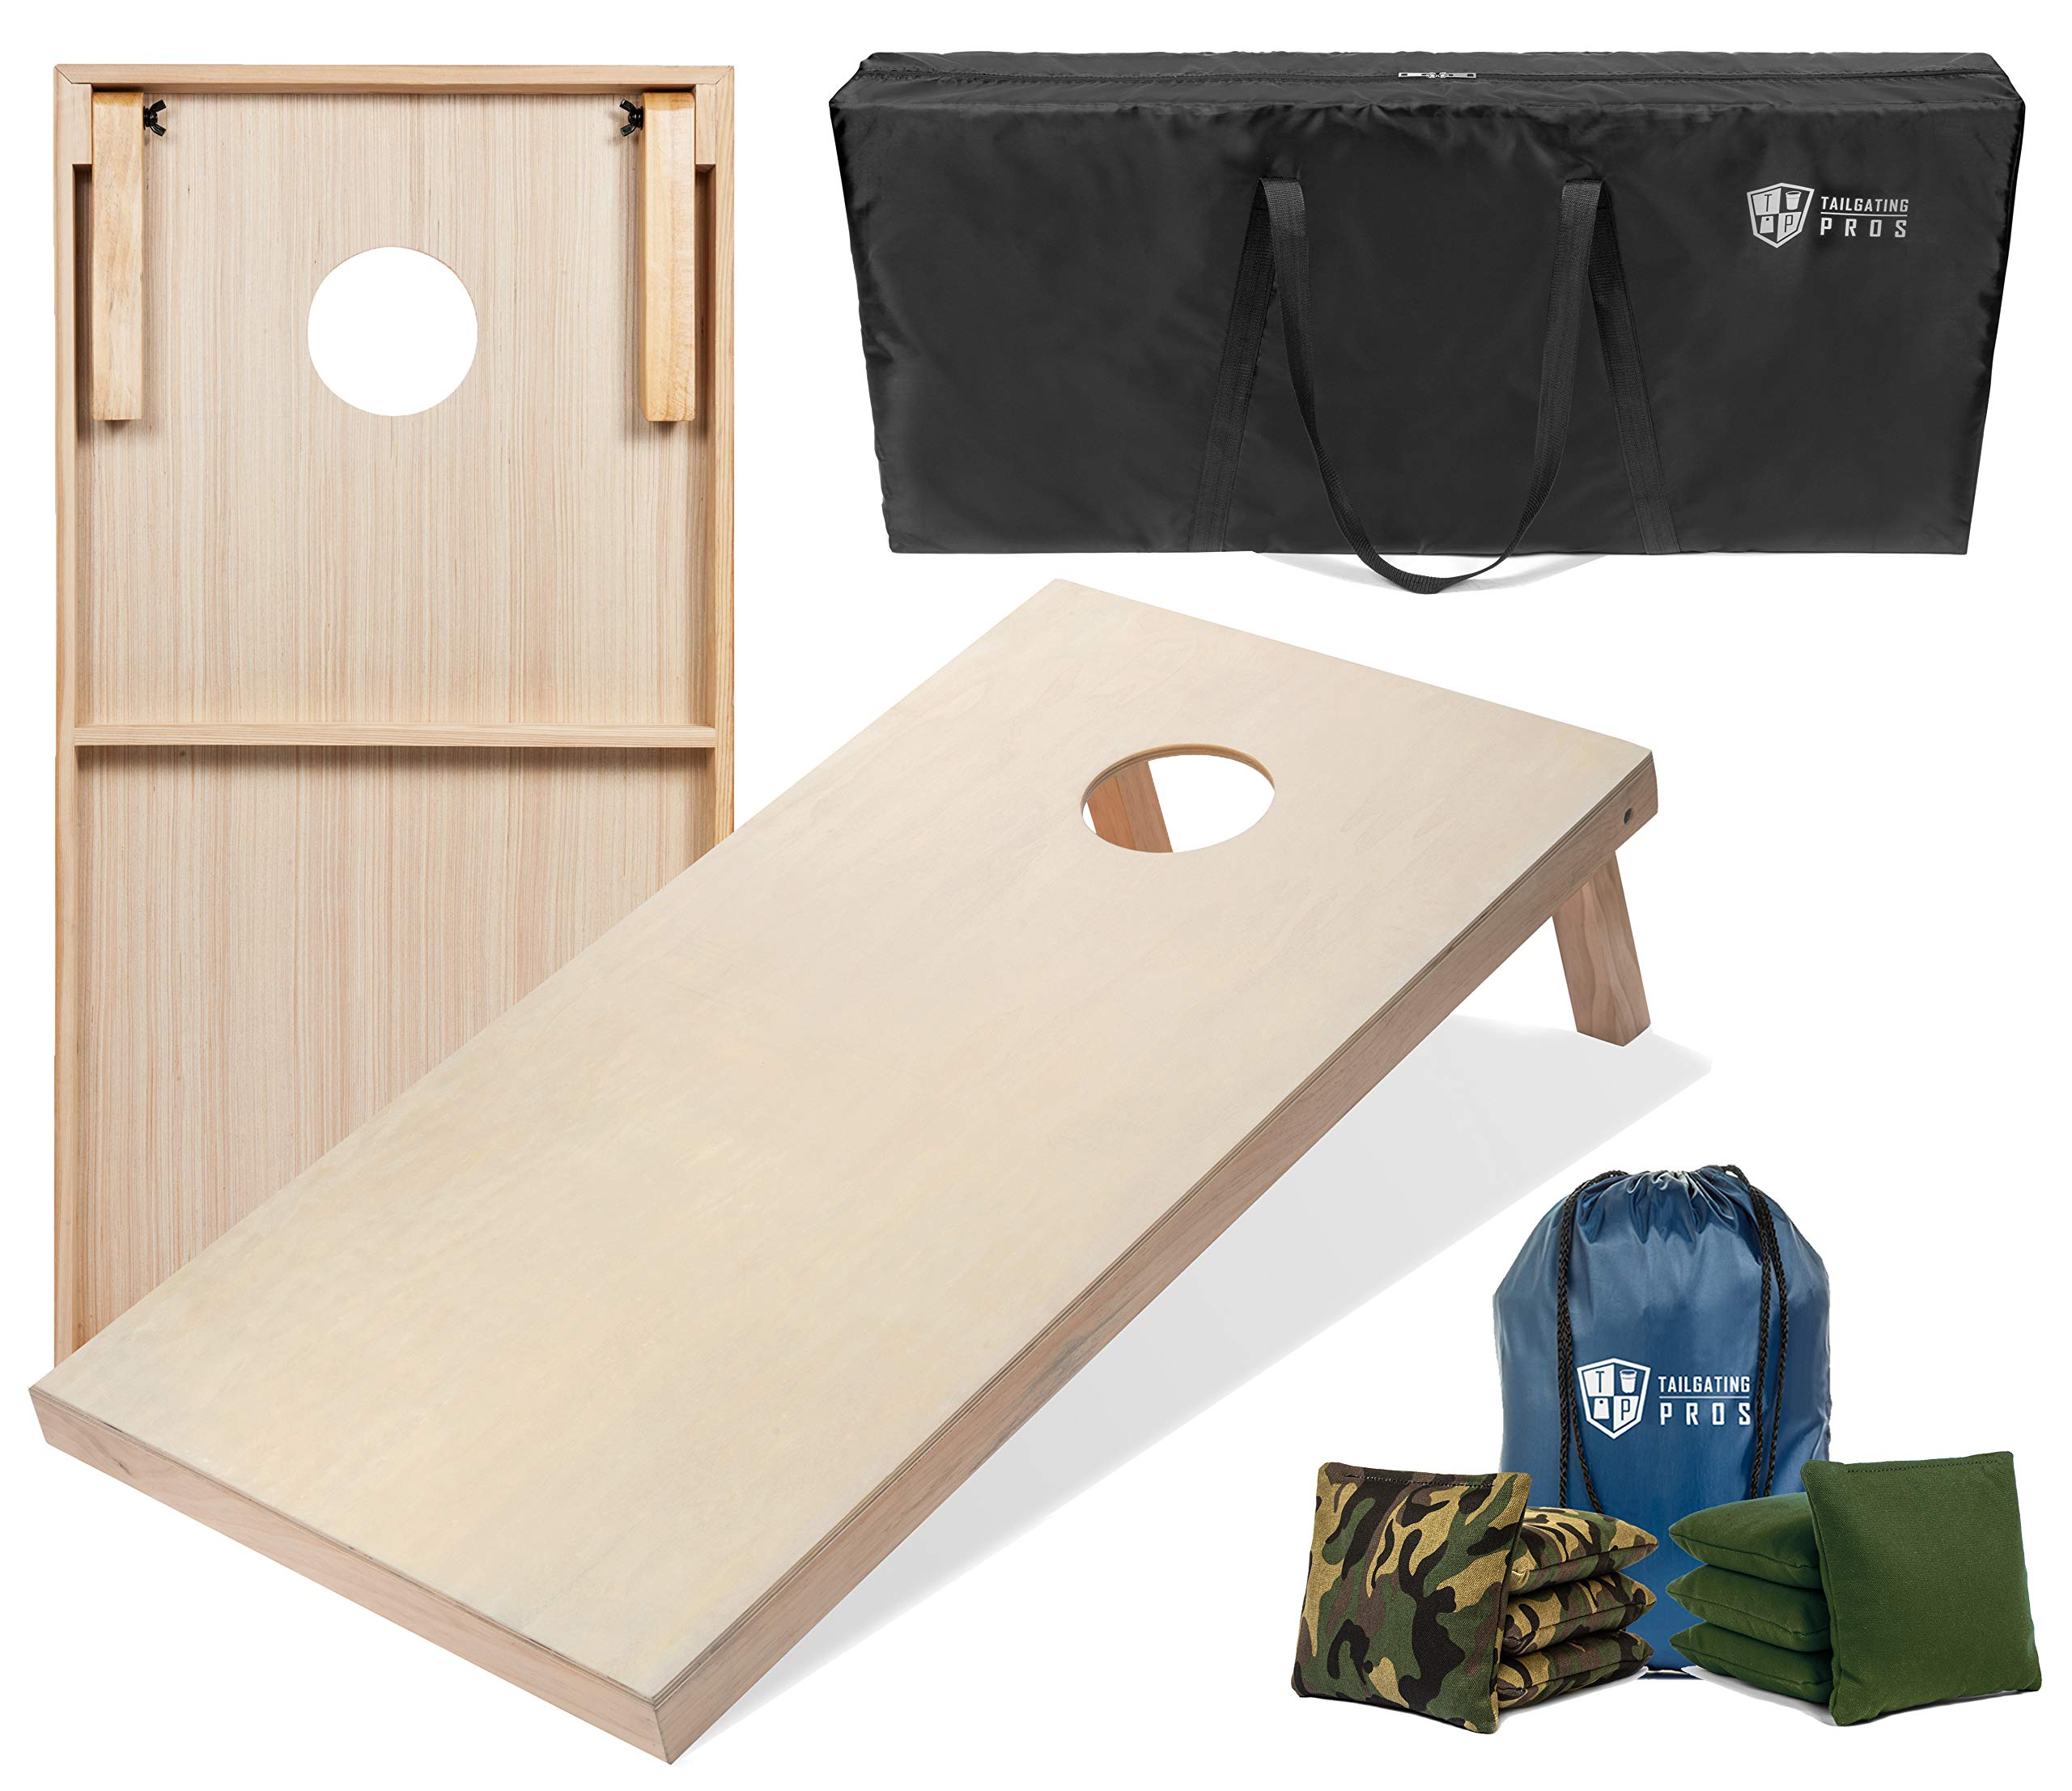 Tailgating Pros 4'x2' & 3'x2' Cornhole Boards w/Carrying Case & Set of 8 Cornhole Bags (You Pick Colors) 150+ Color Combos! (Green Camo/Hunter, 4'x2' Boards) by Tailgating Pros